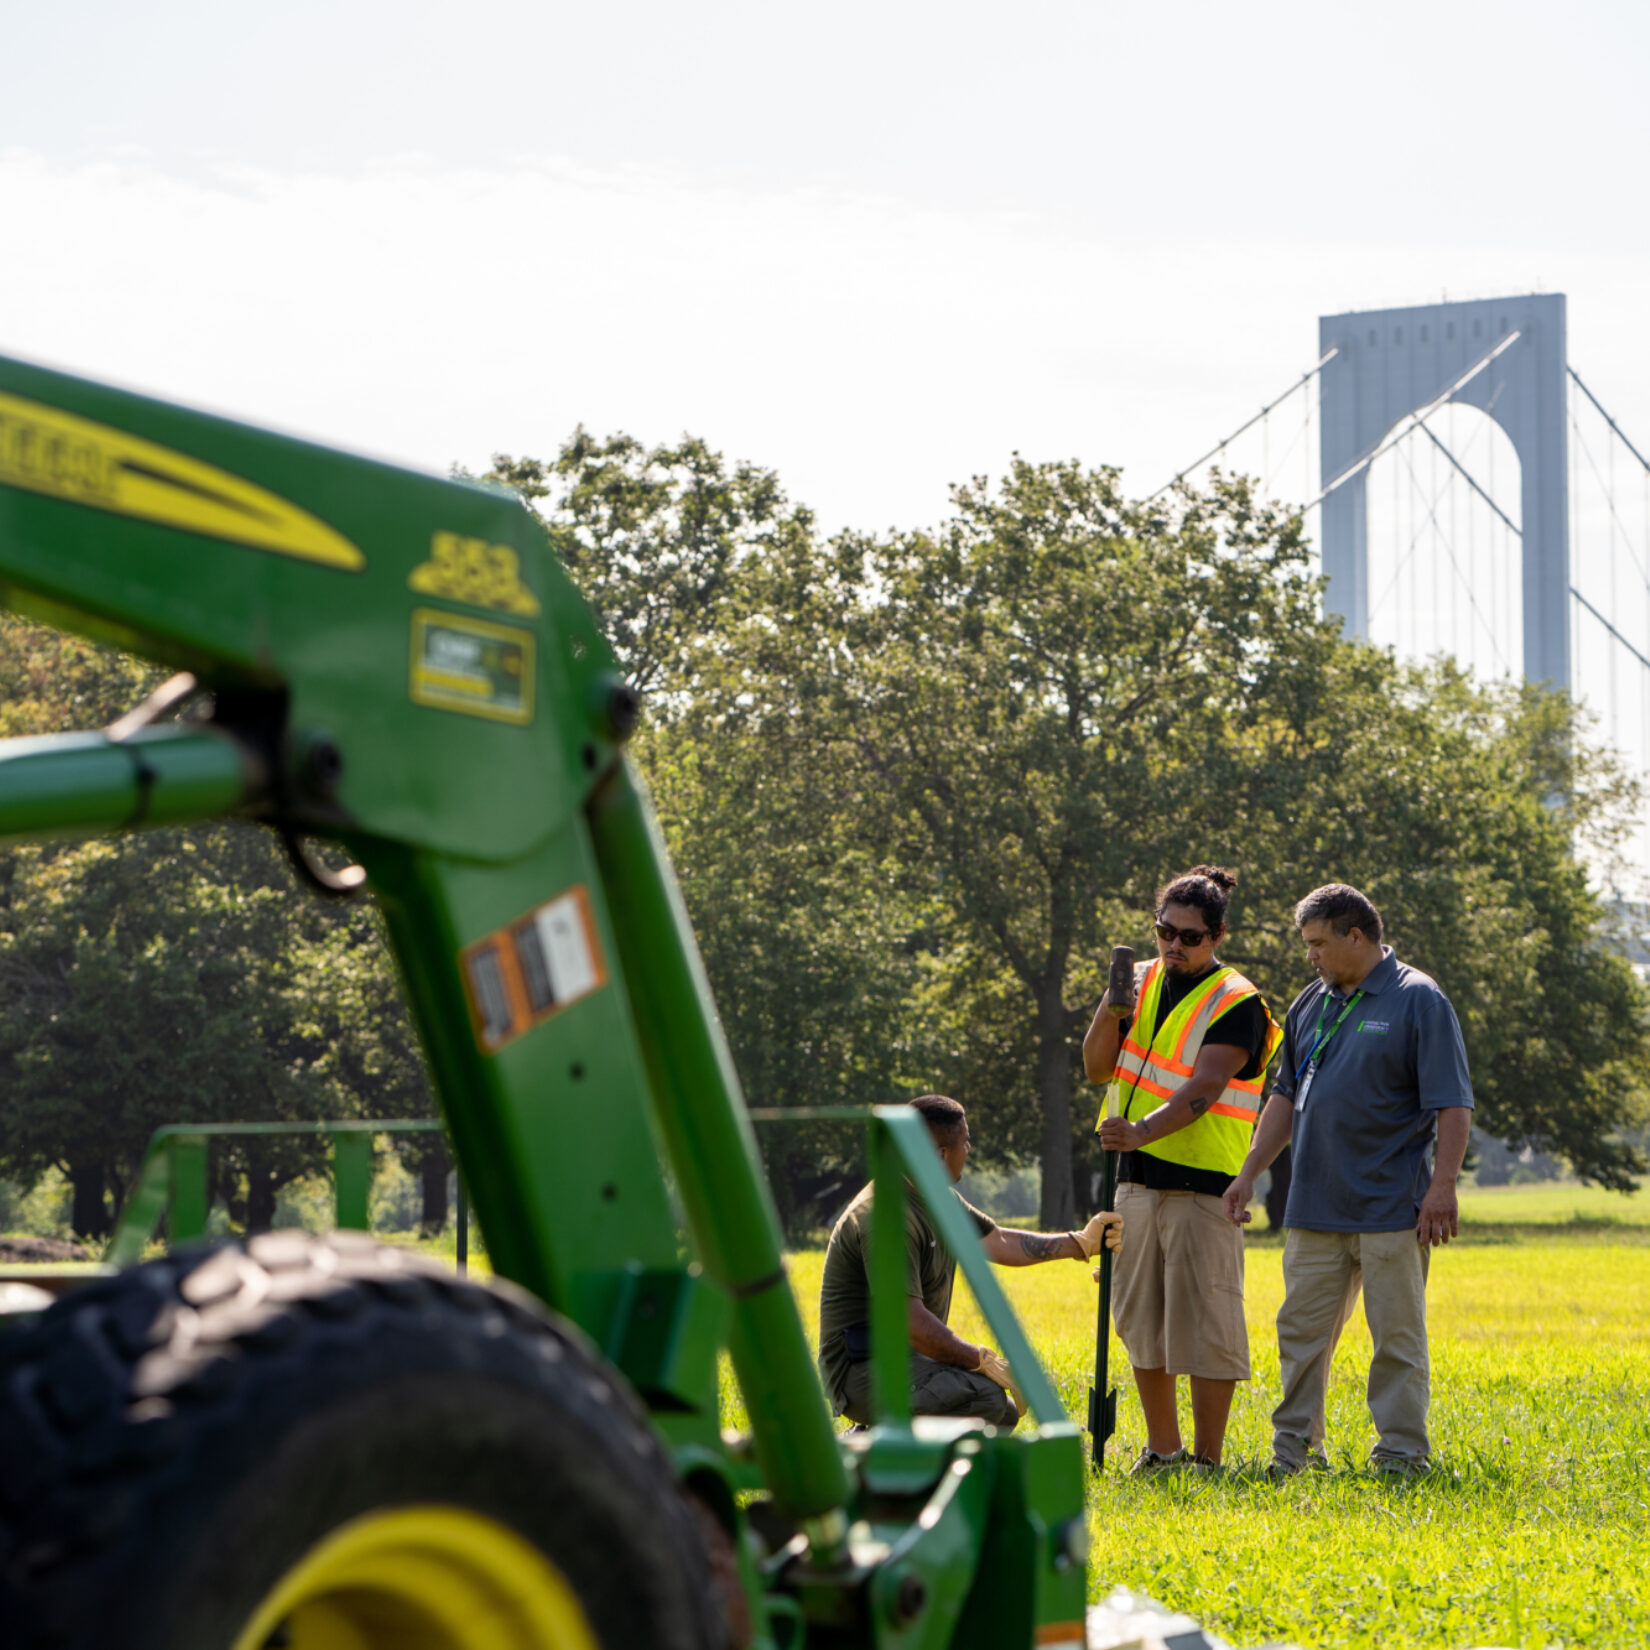 Park staff working at Ferry Point Park, with the Throgs Neck Bridge in the distance